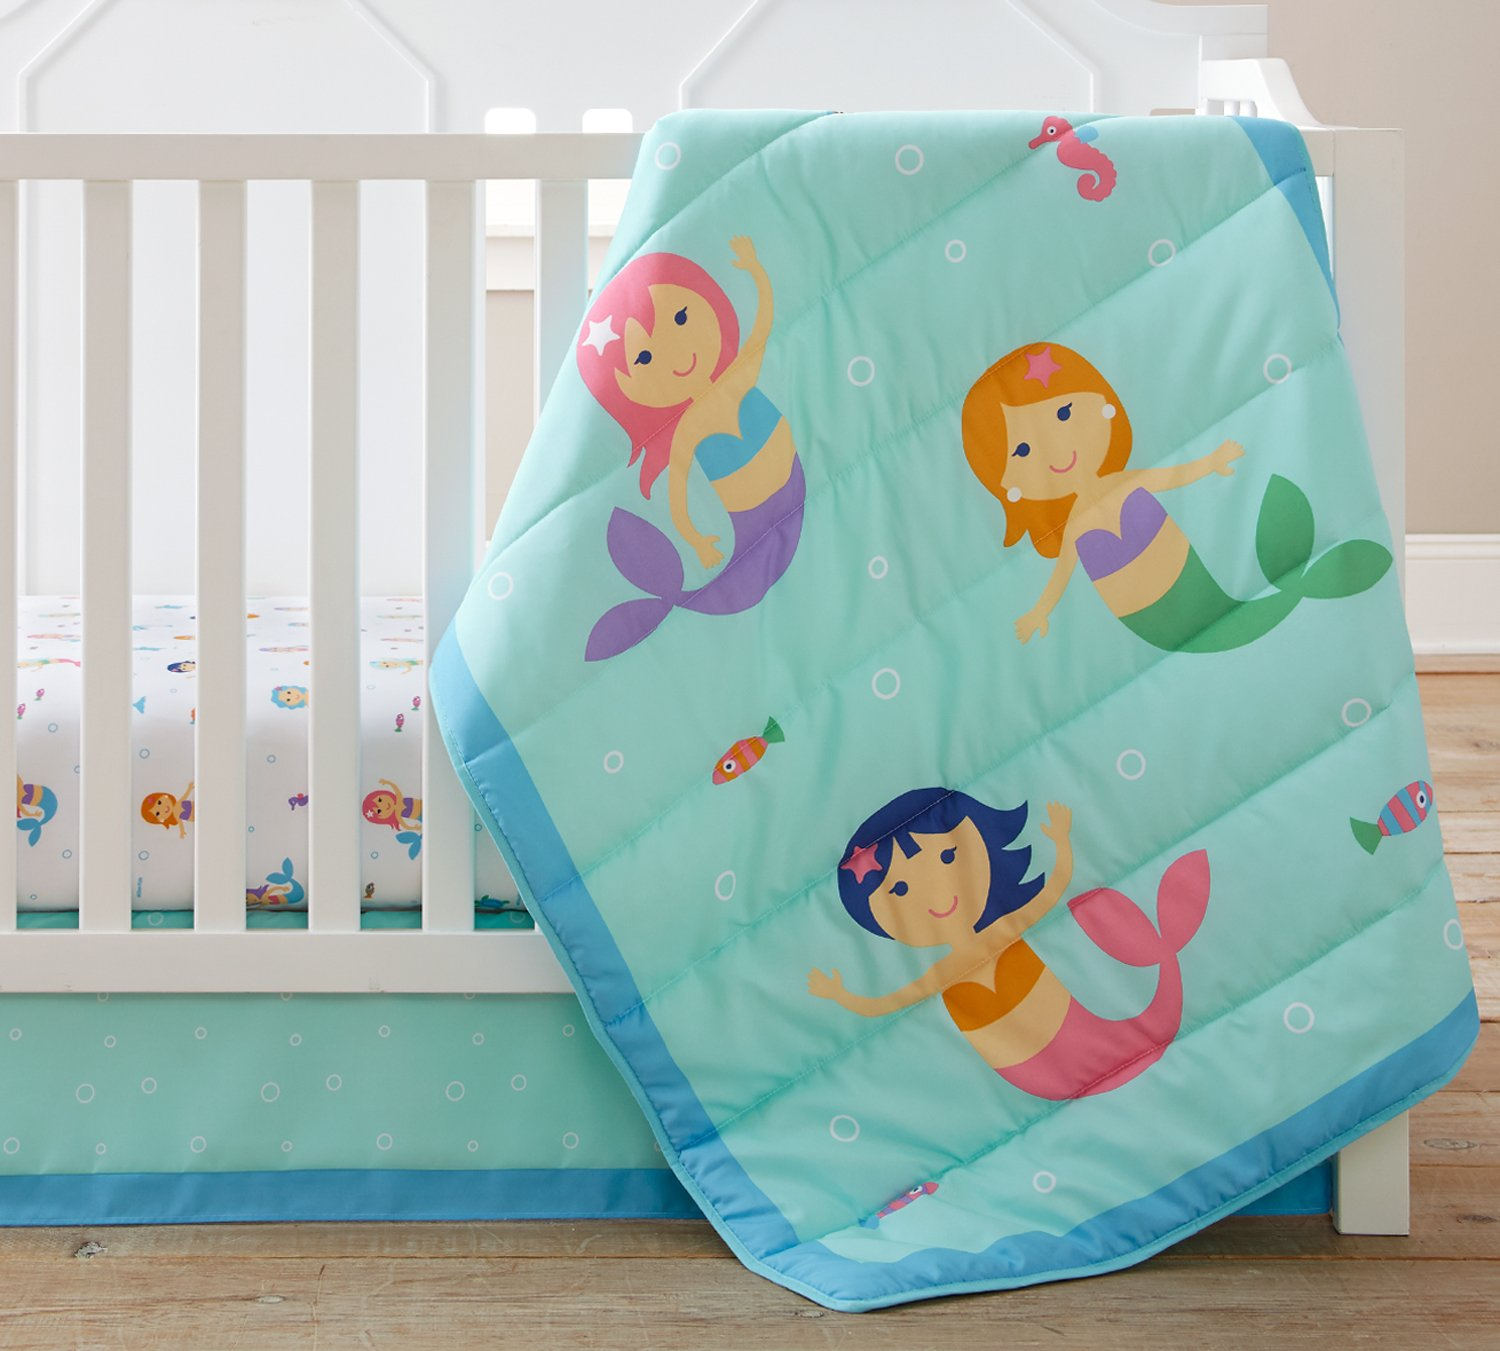 Wildkin 3 Piece Crib Bed-In-A-Bag, 100% Microfiber Crib Bedding Set, Includes Comforter, Fitted Sheet, and Crib Skirt, Coordinates with Other Room Décor, Olive Kids Design – Mermaids